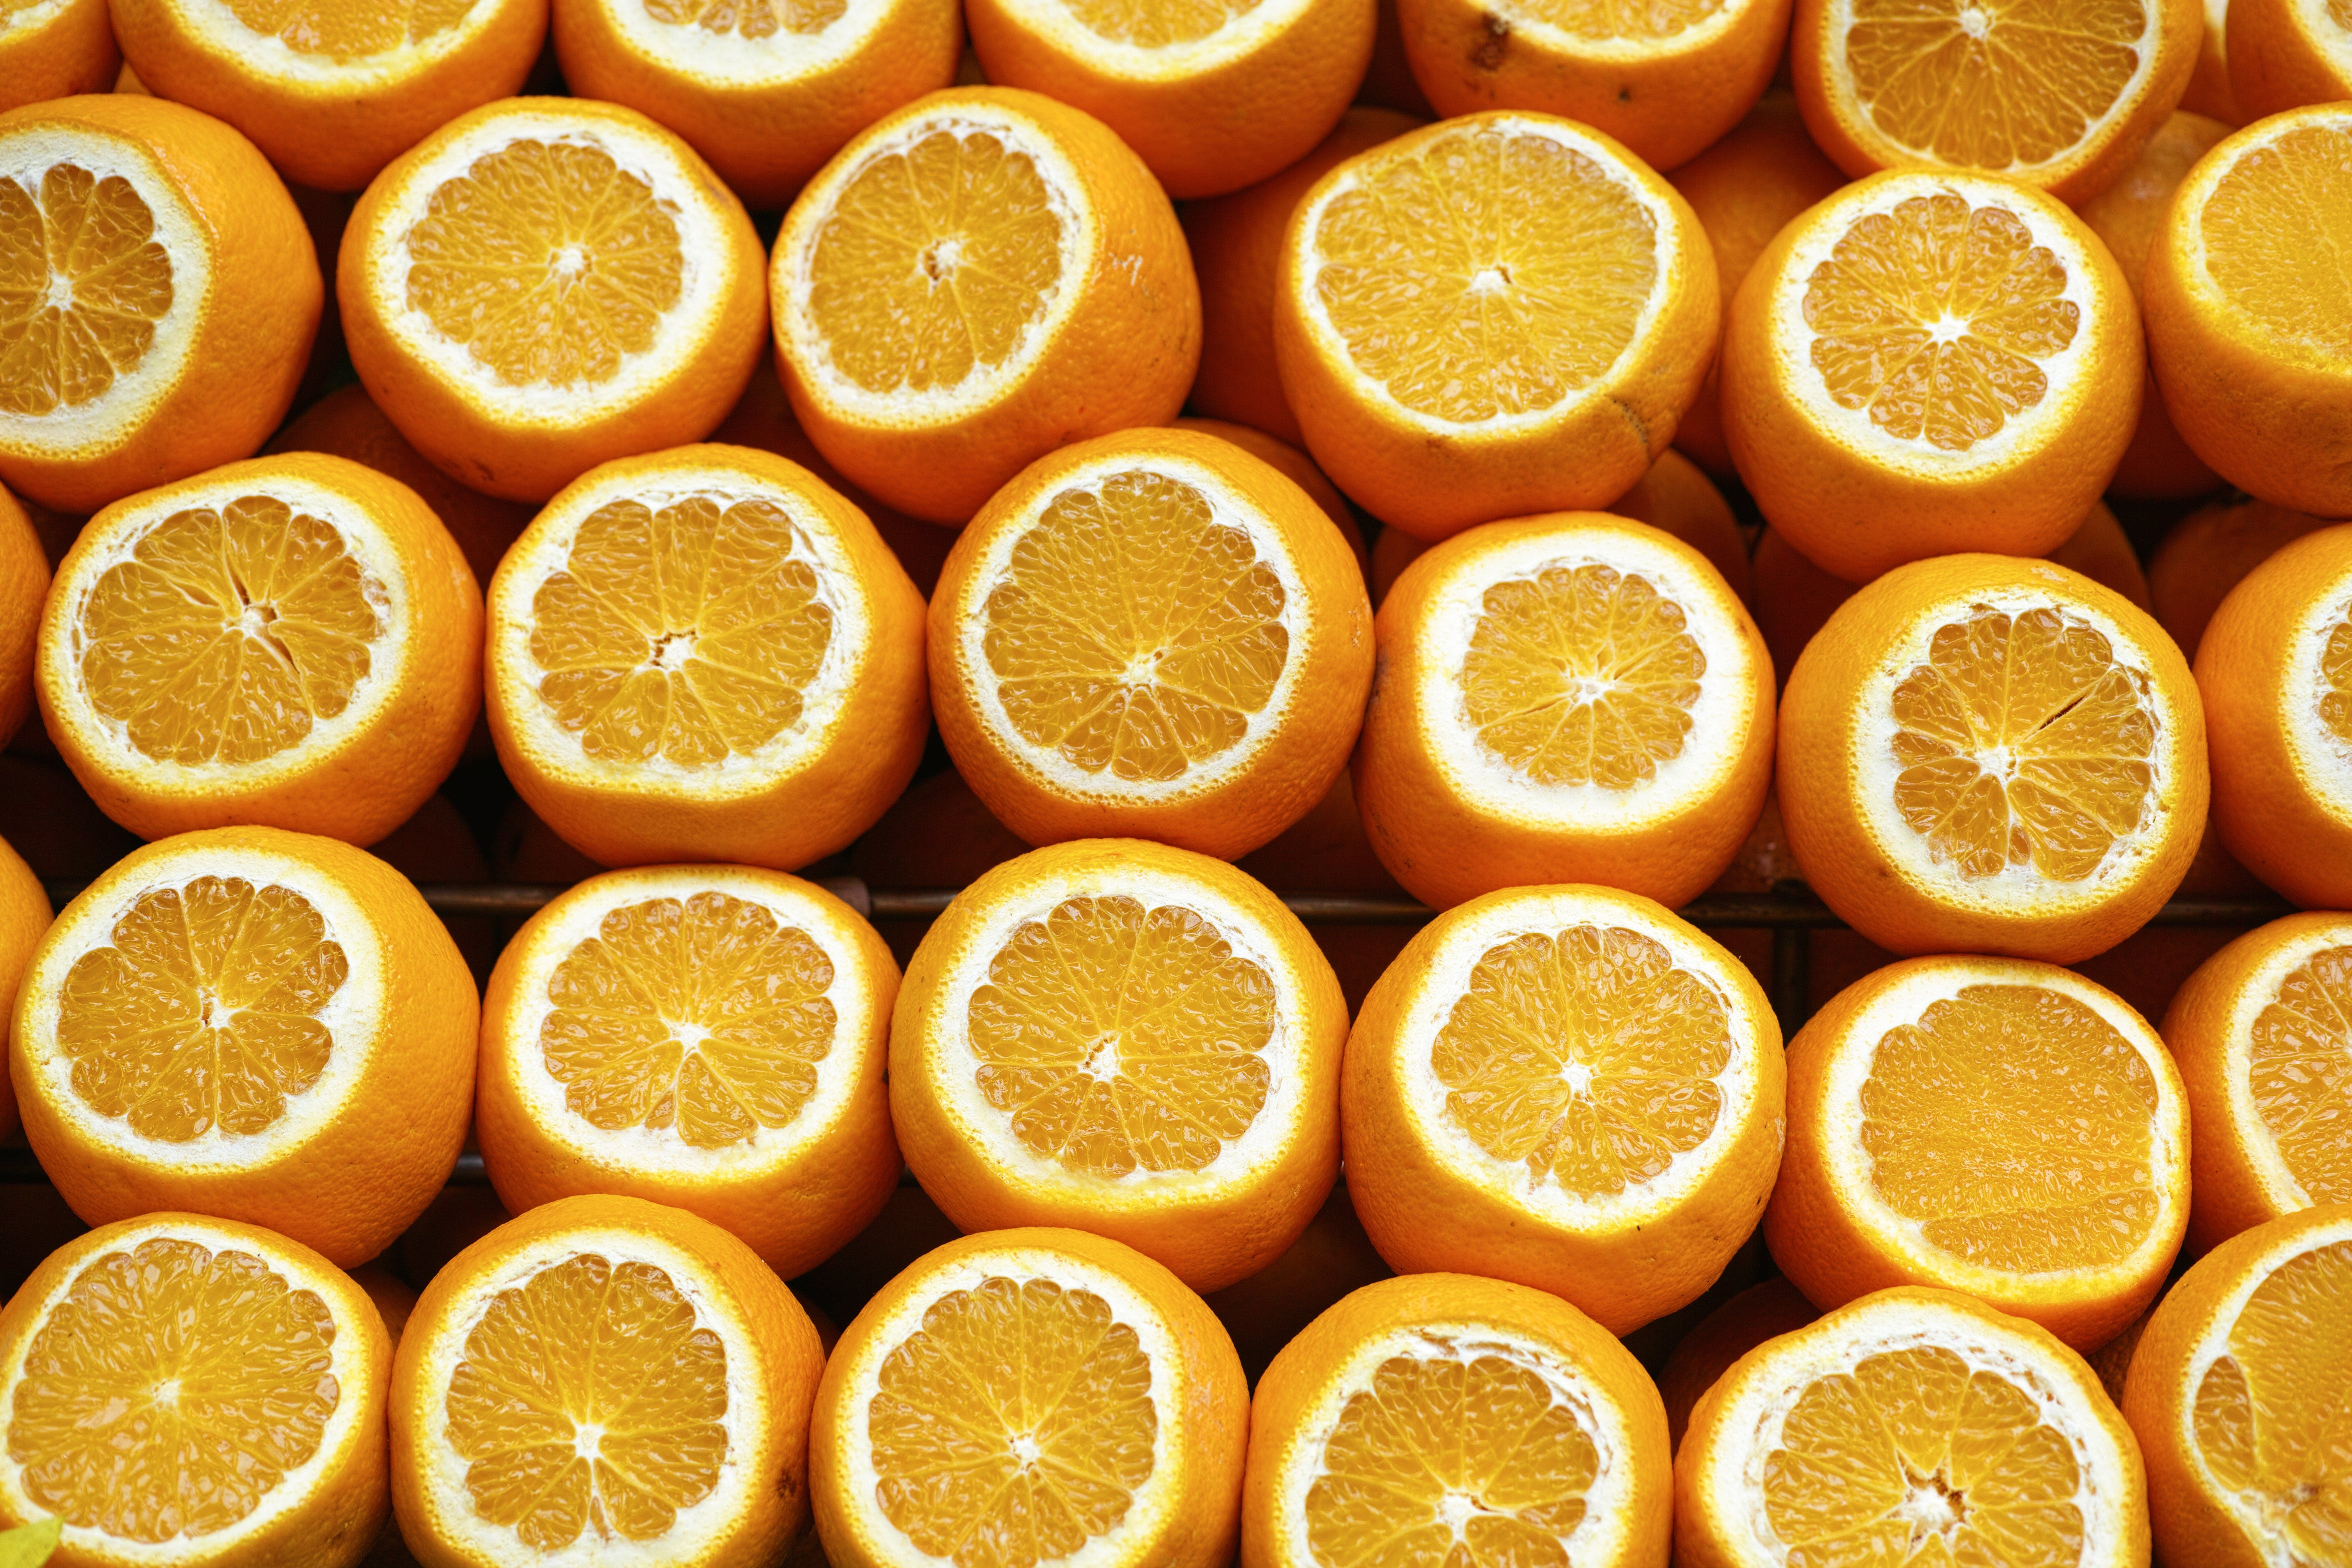 Vitamin C helps fight metabolic syndrome